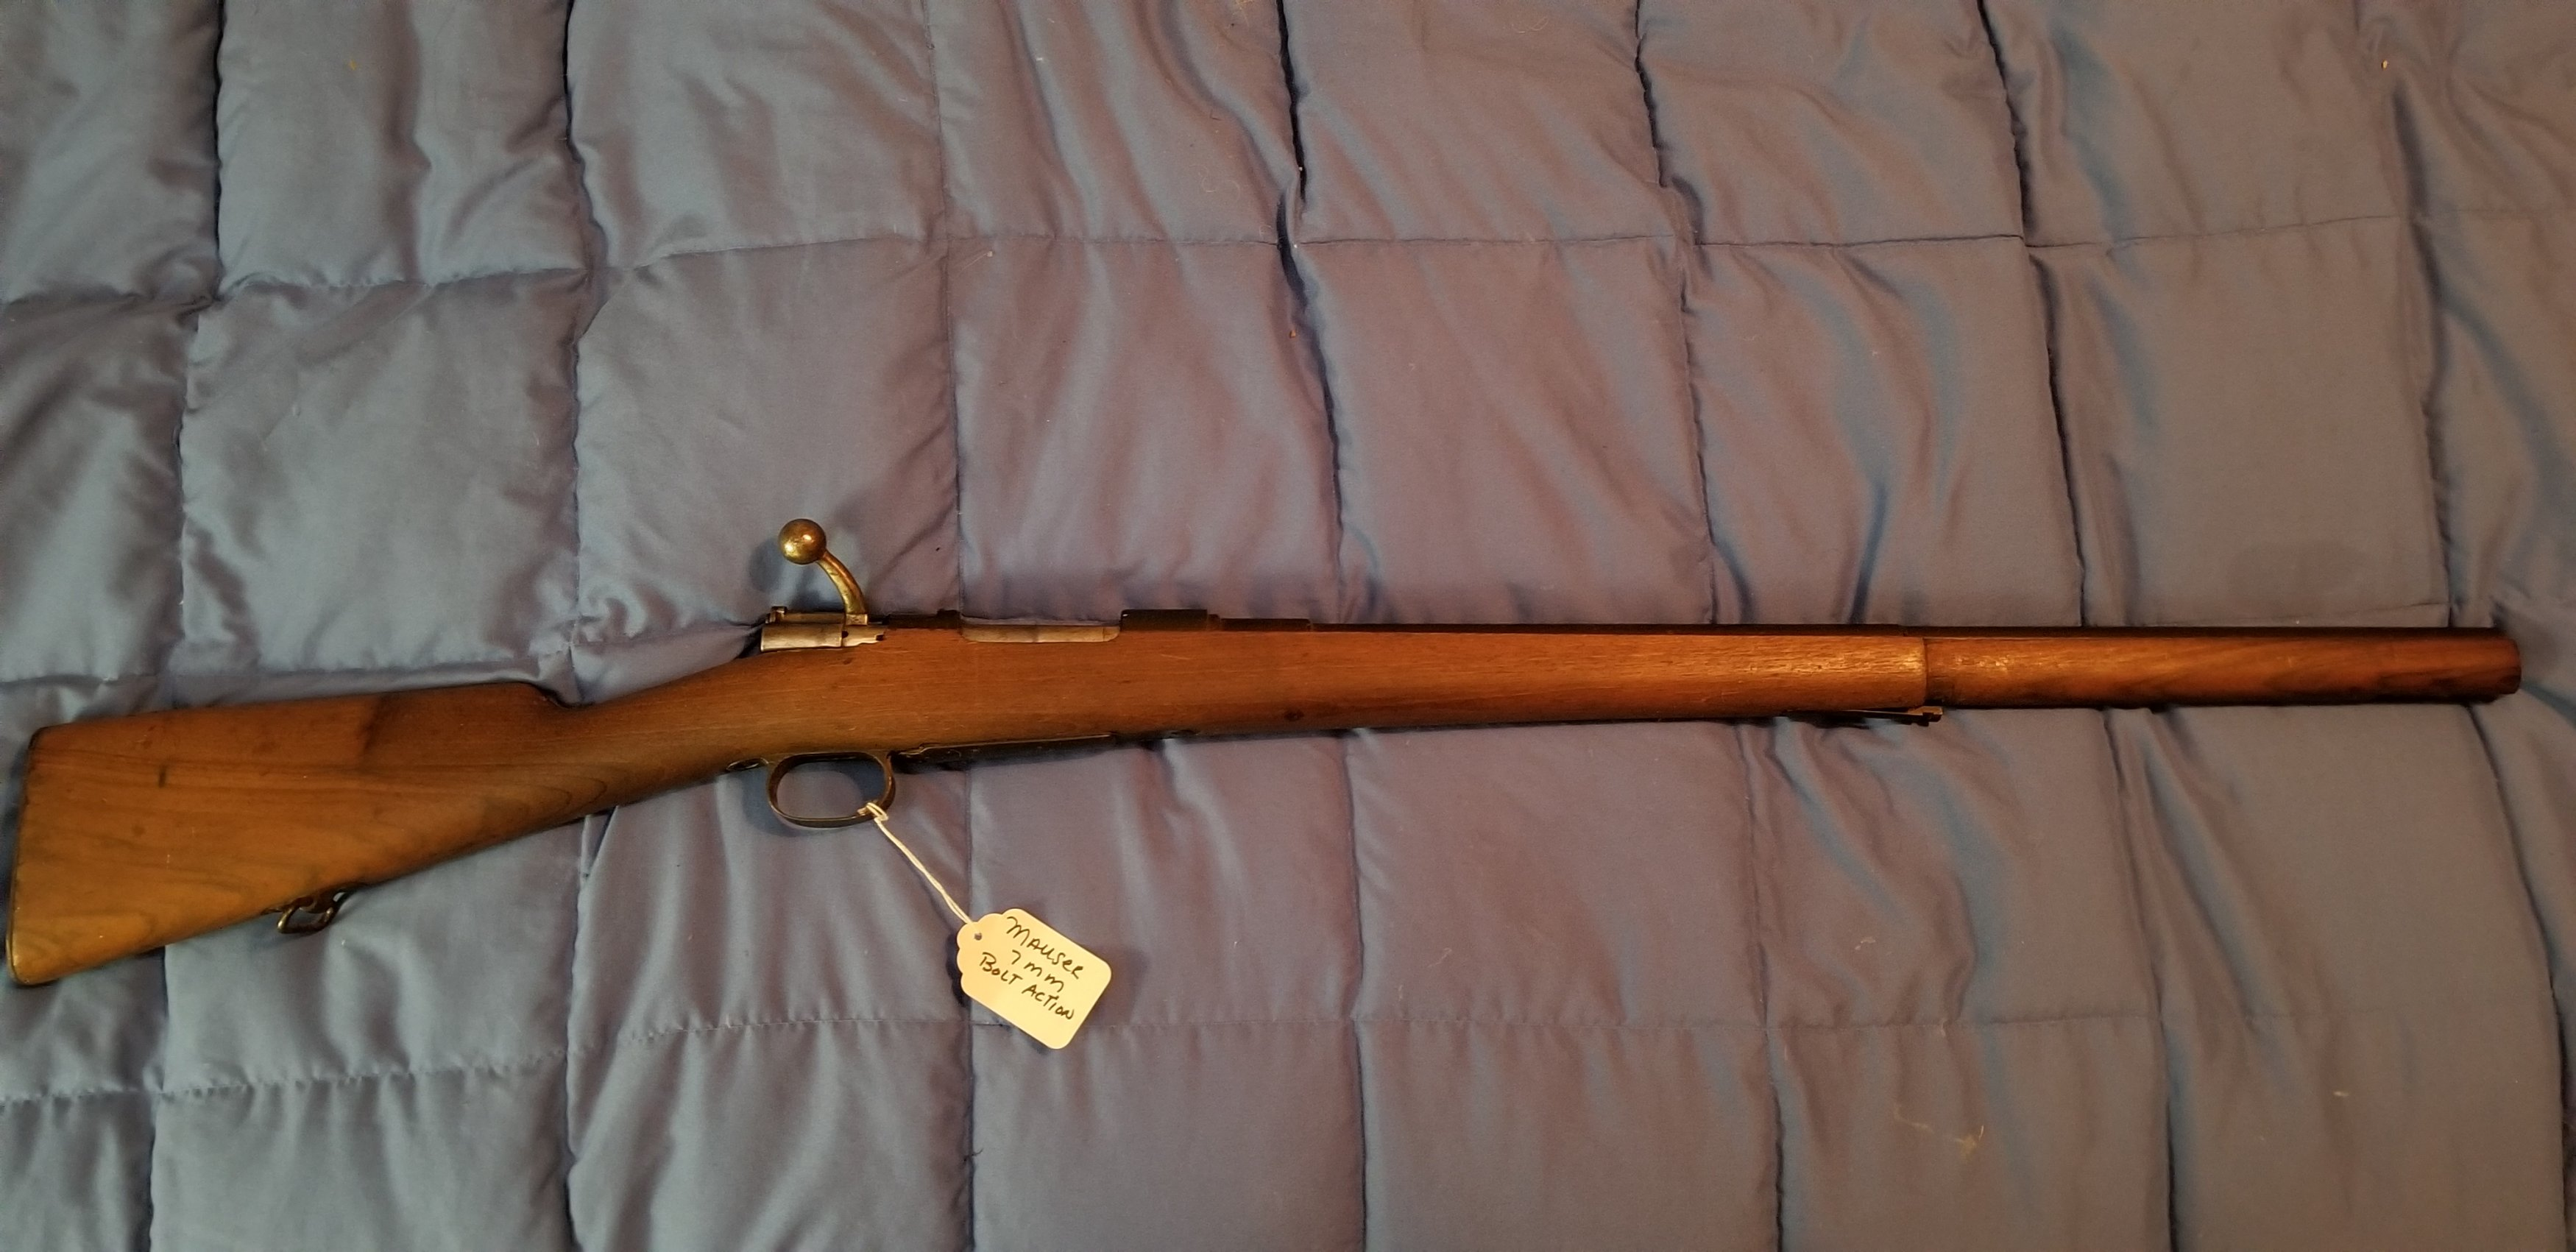 Can you help me identify this Mauser?